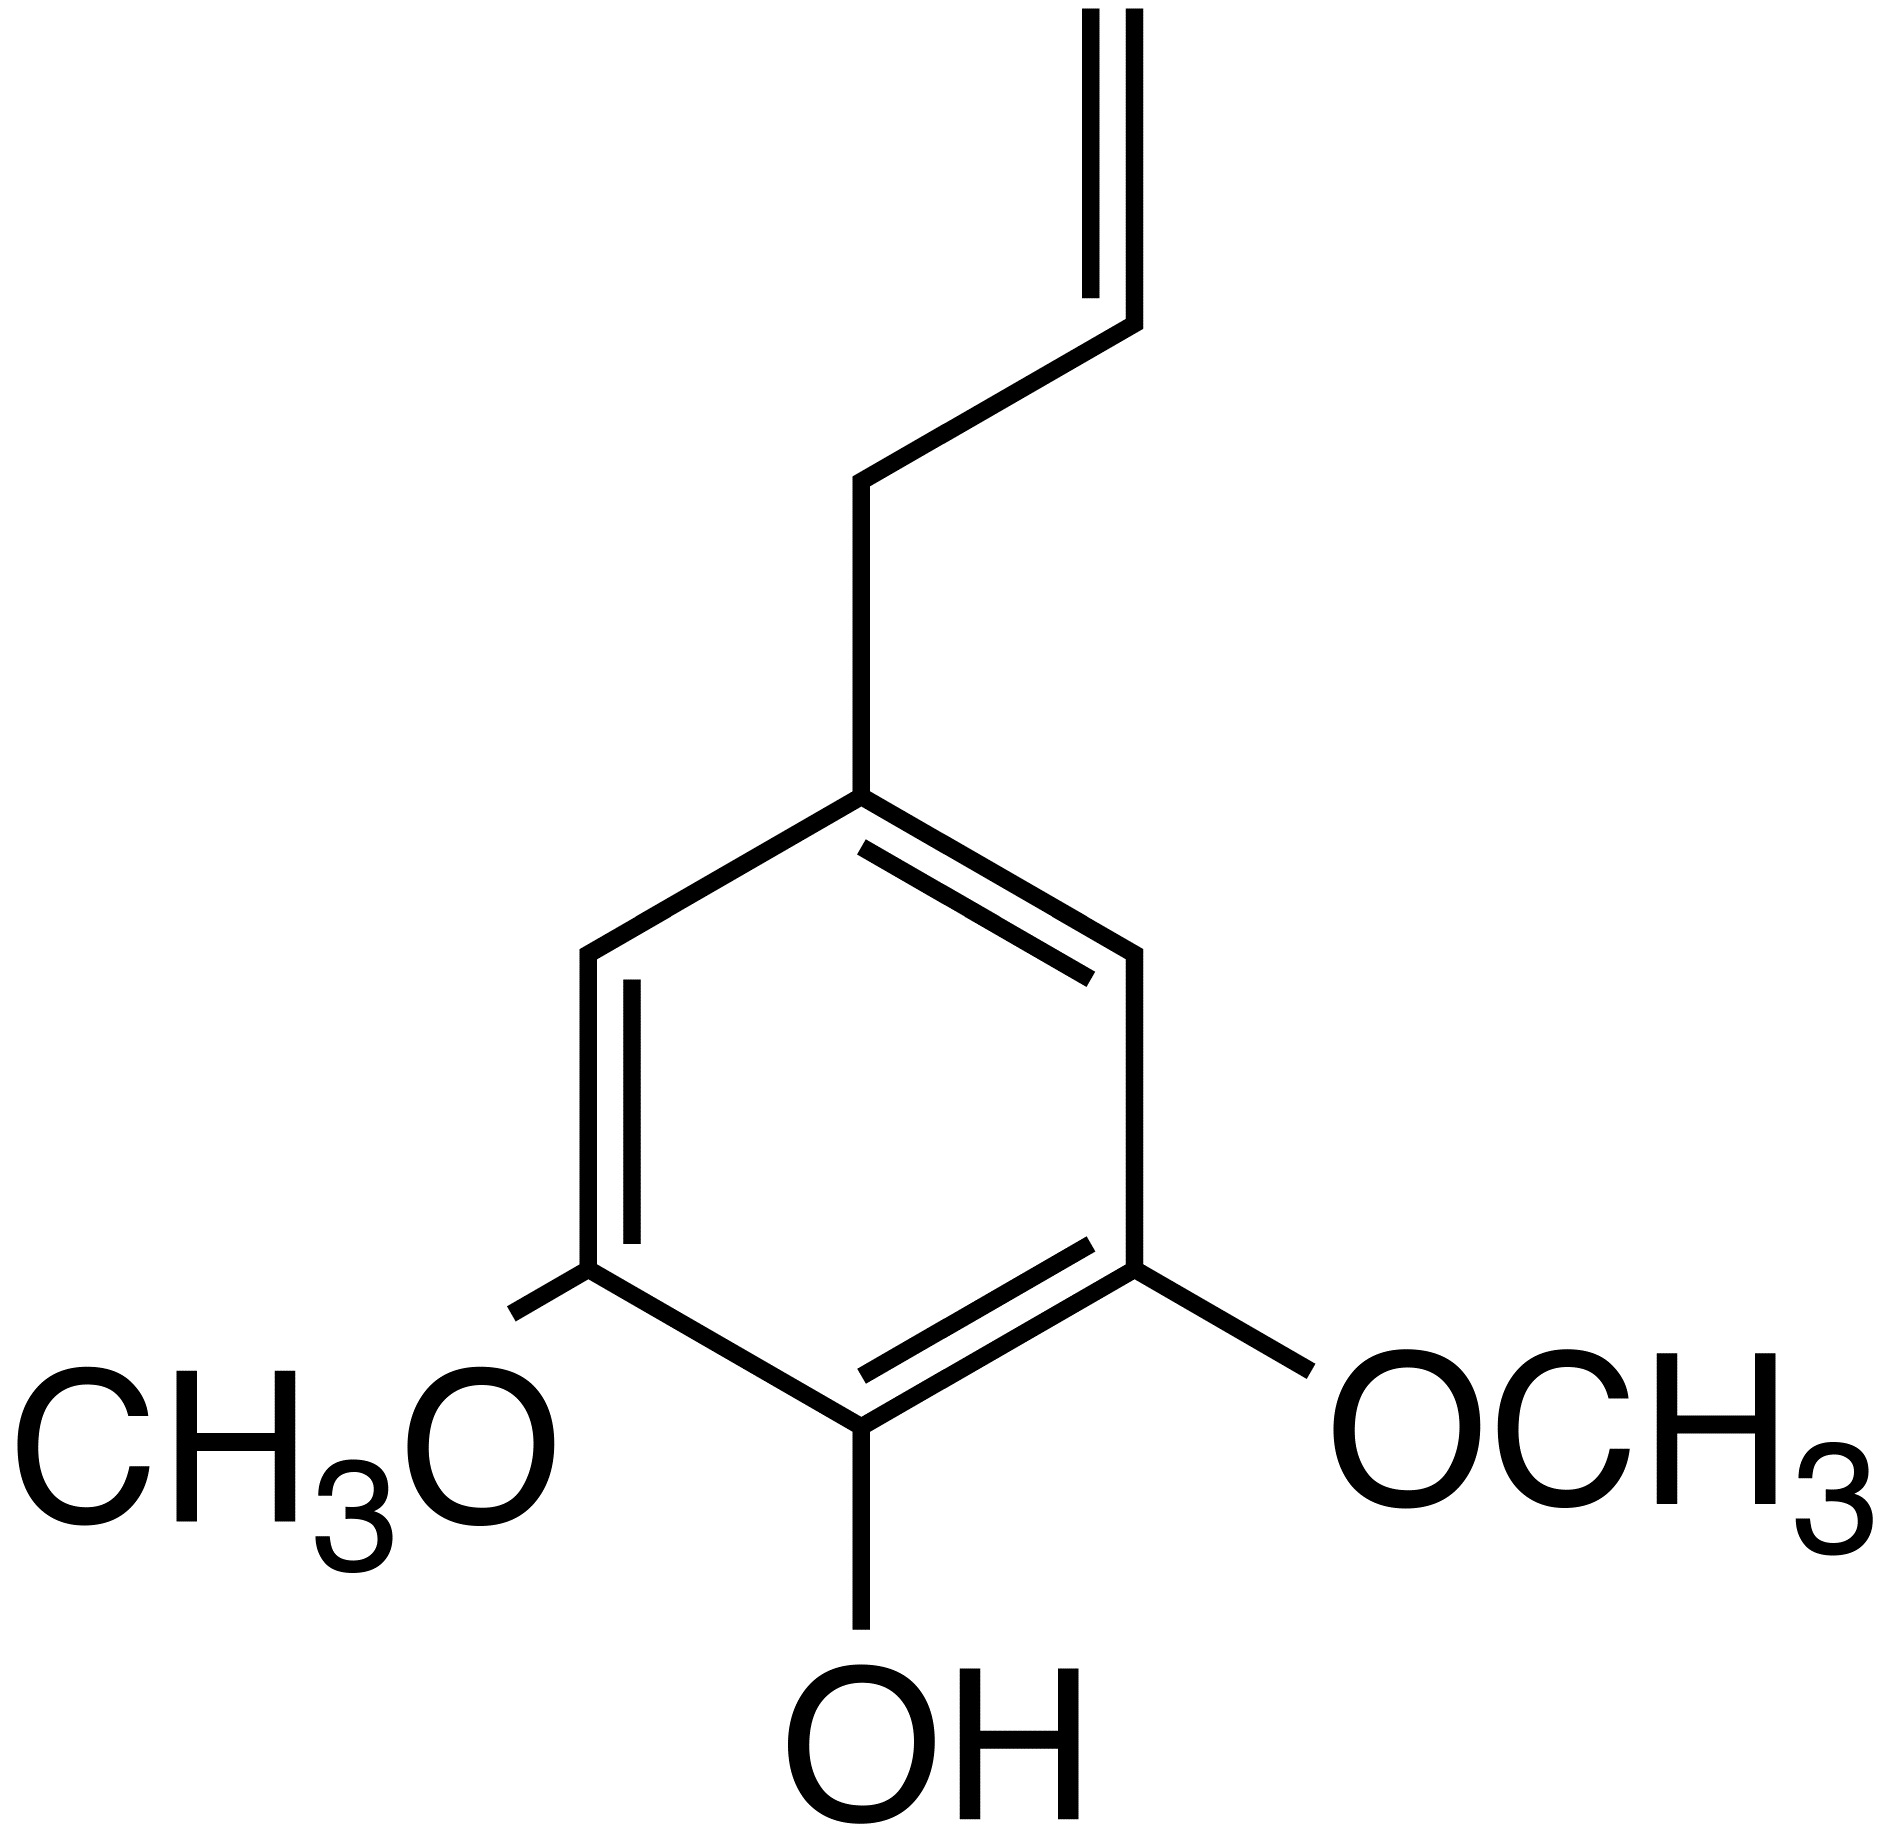 4-Allyl-2,6-dimethoxyphenol image